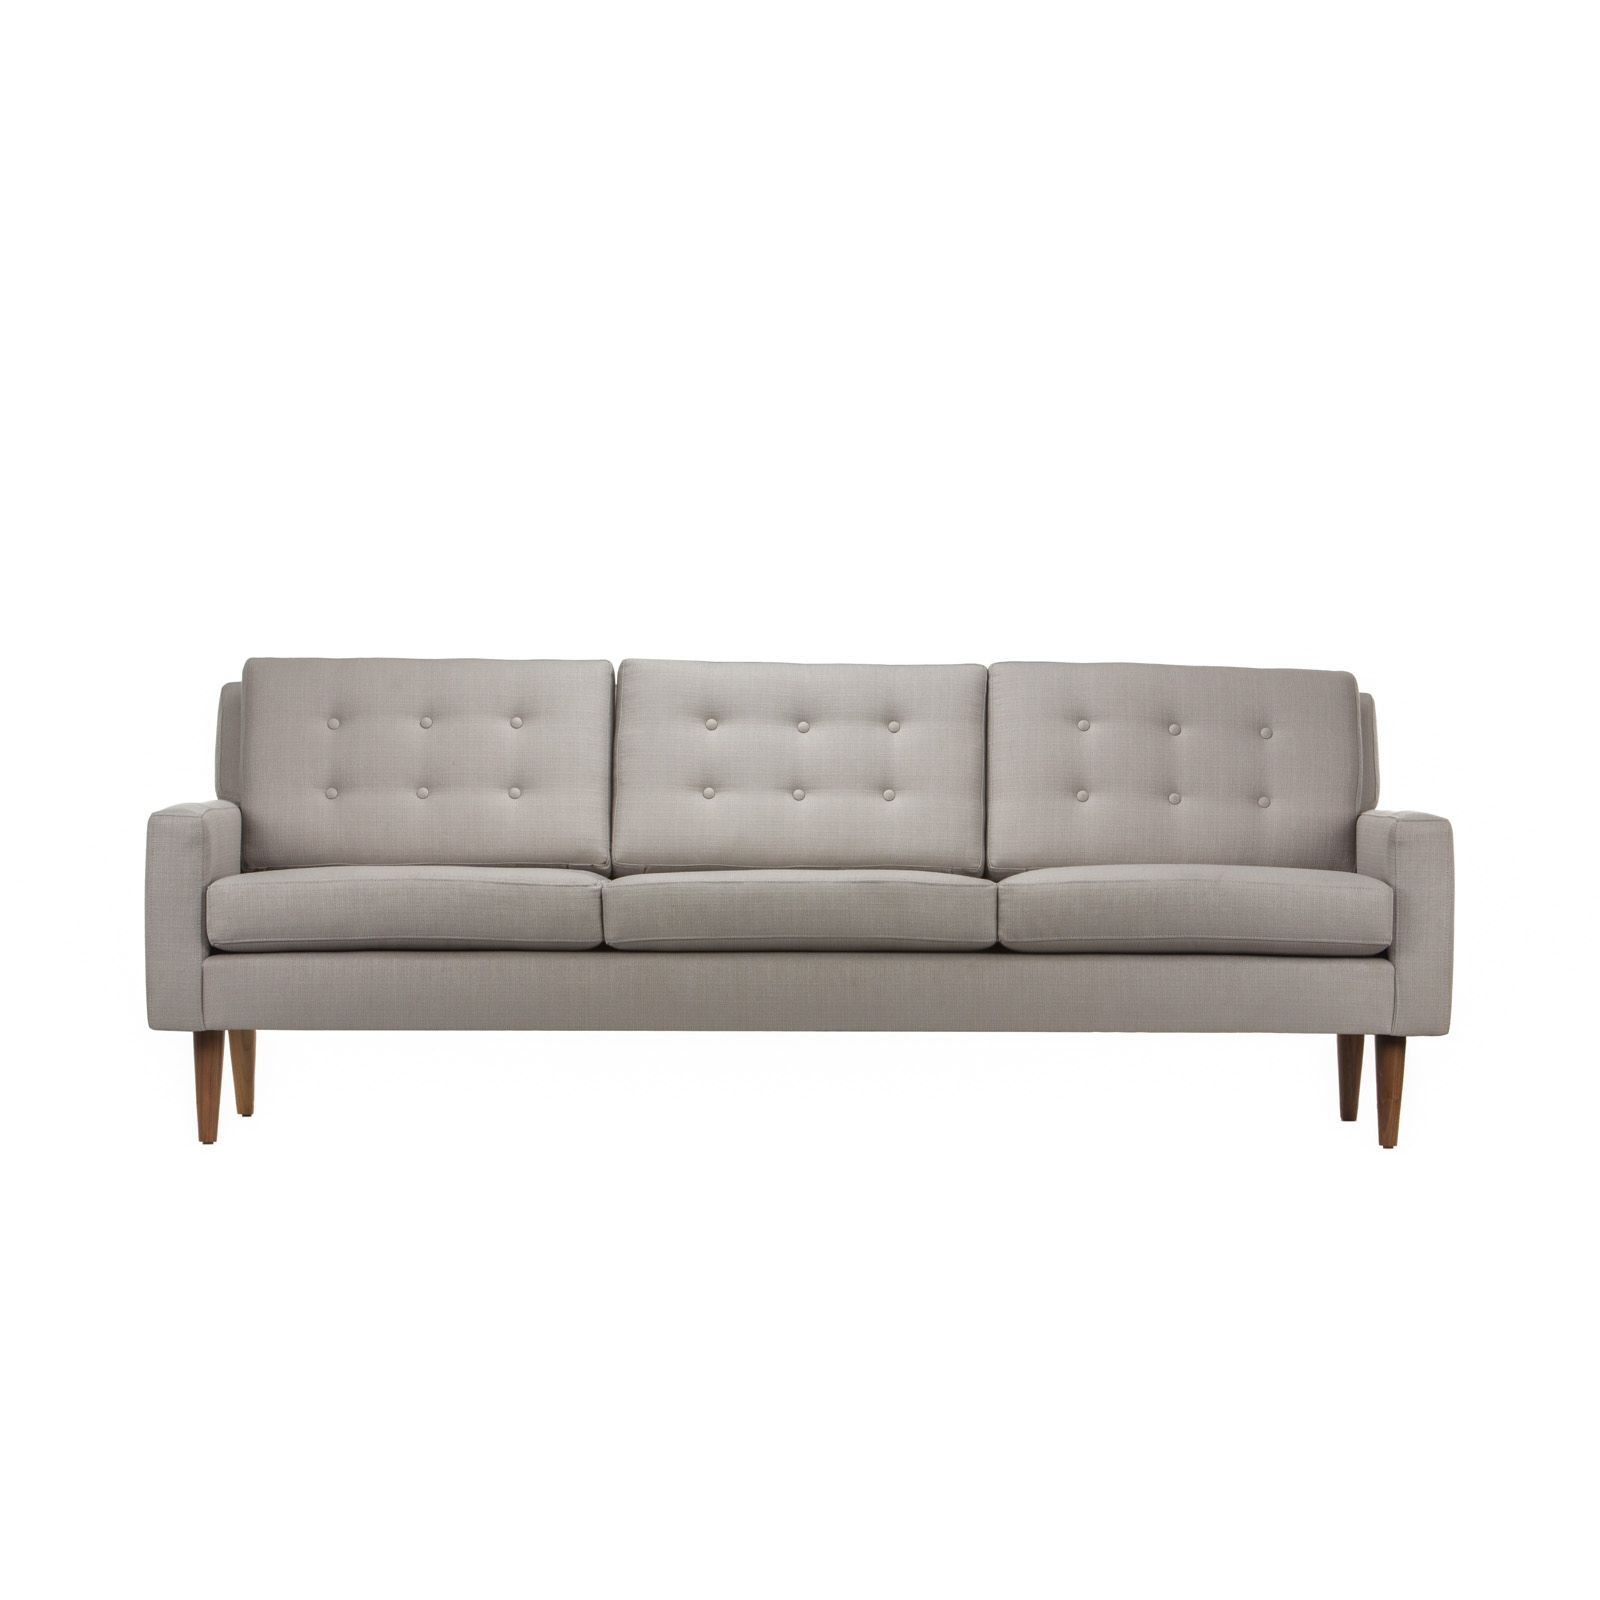 West Elm Dunham Sofa Reviews Cream And Gold Any Experience With S Sectional Good Questions Discover Ideas About